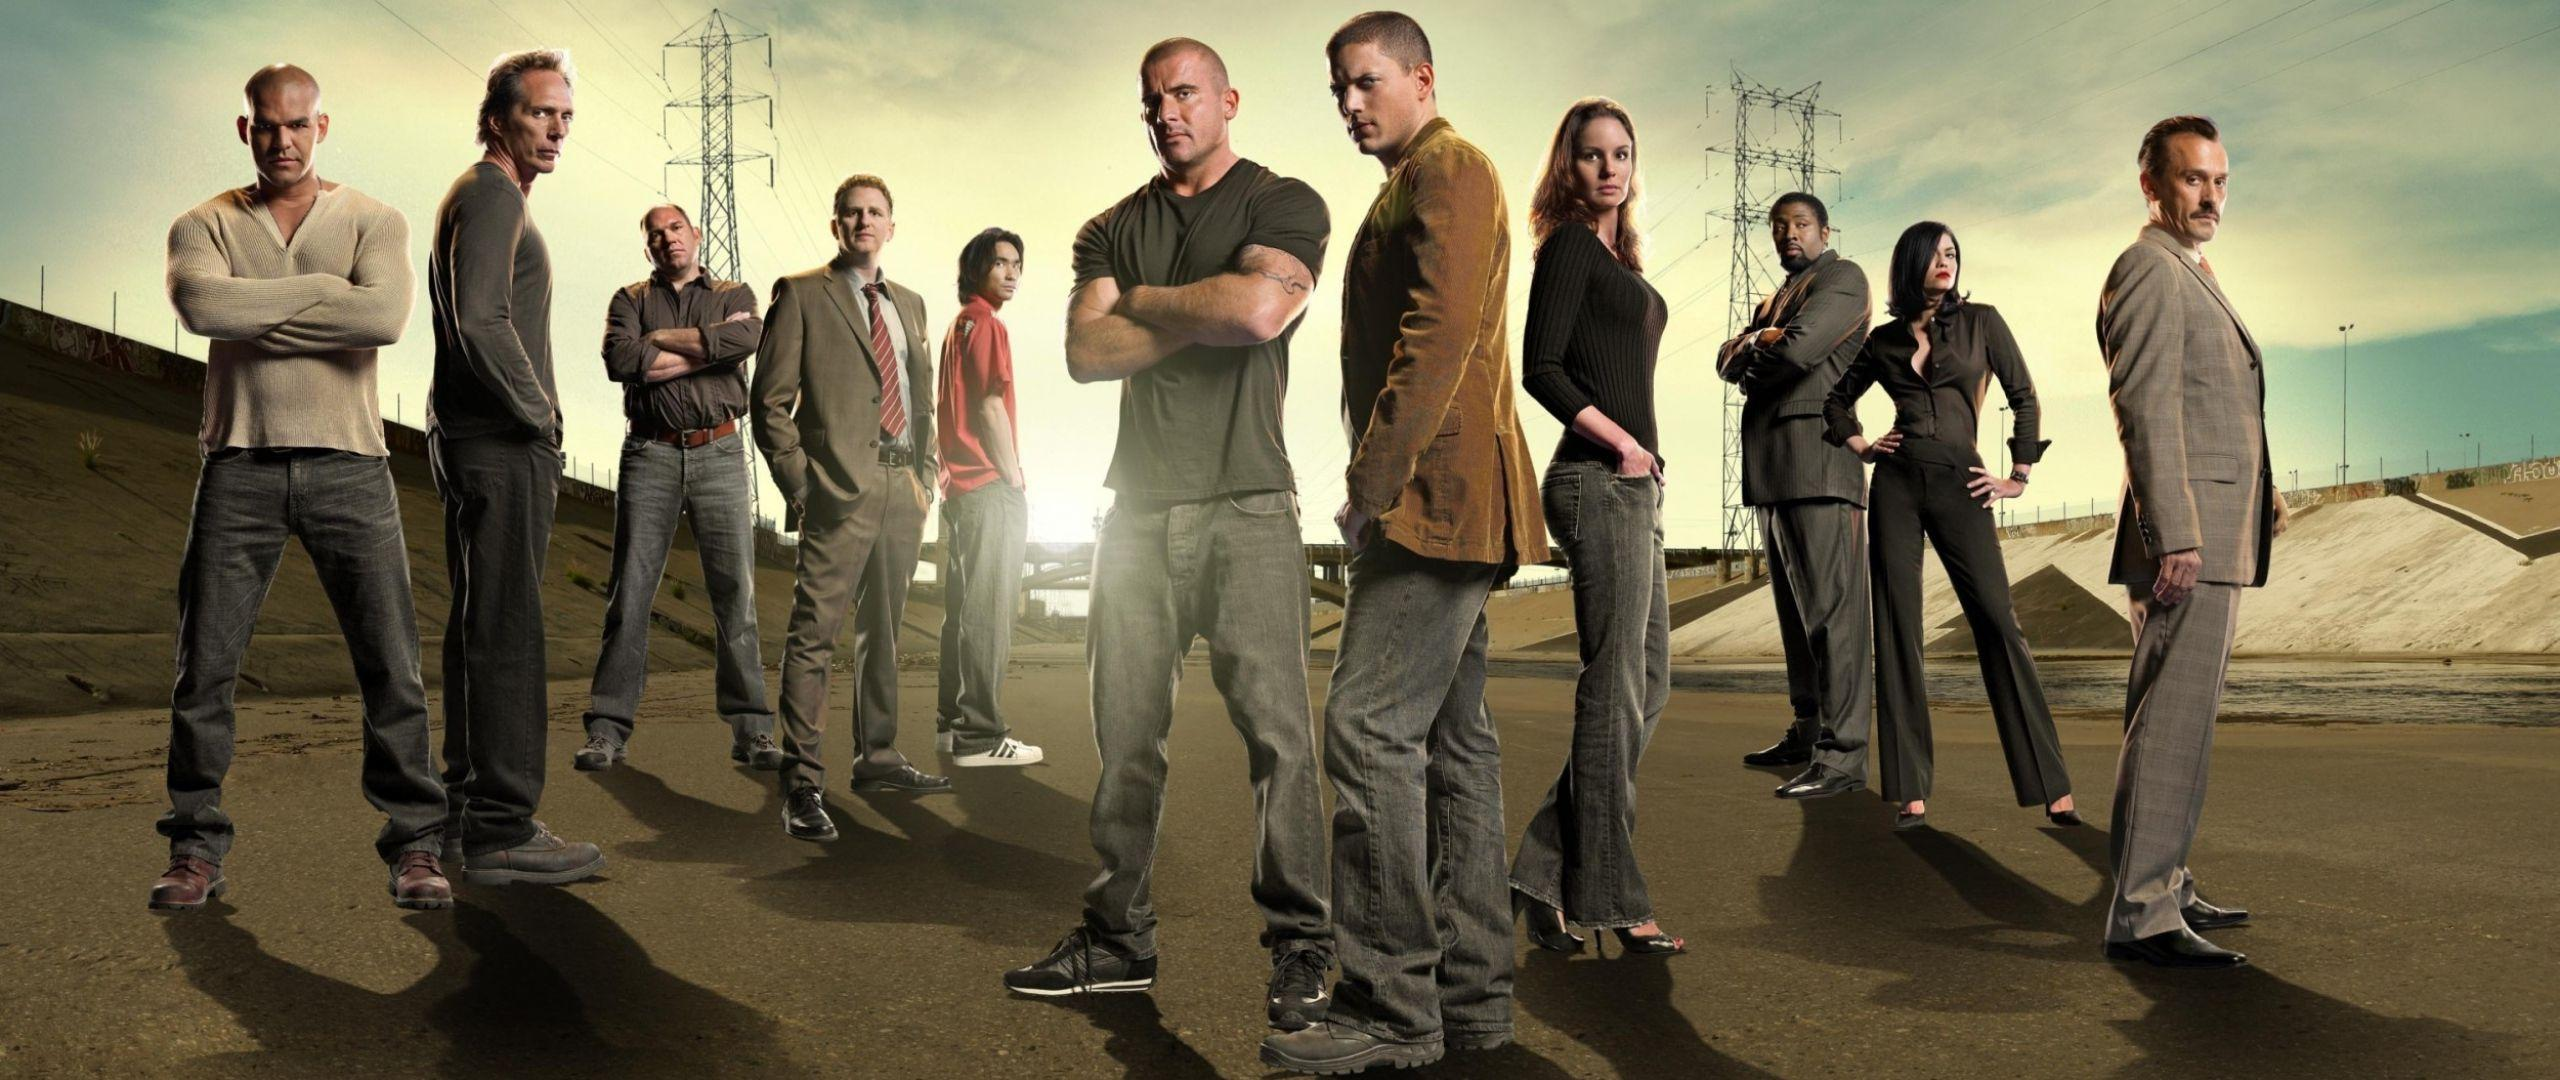 Download Wallpapers 2560x1080 Scrubs, Tv show, Actors, Doctors